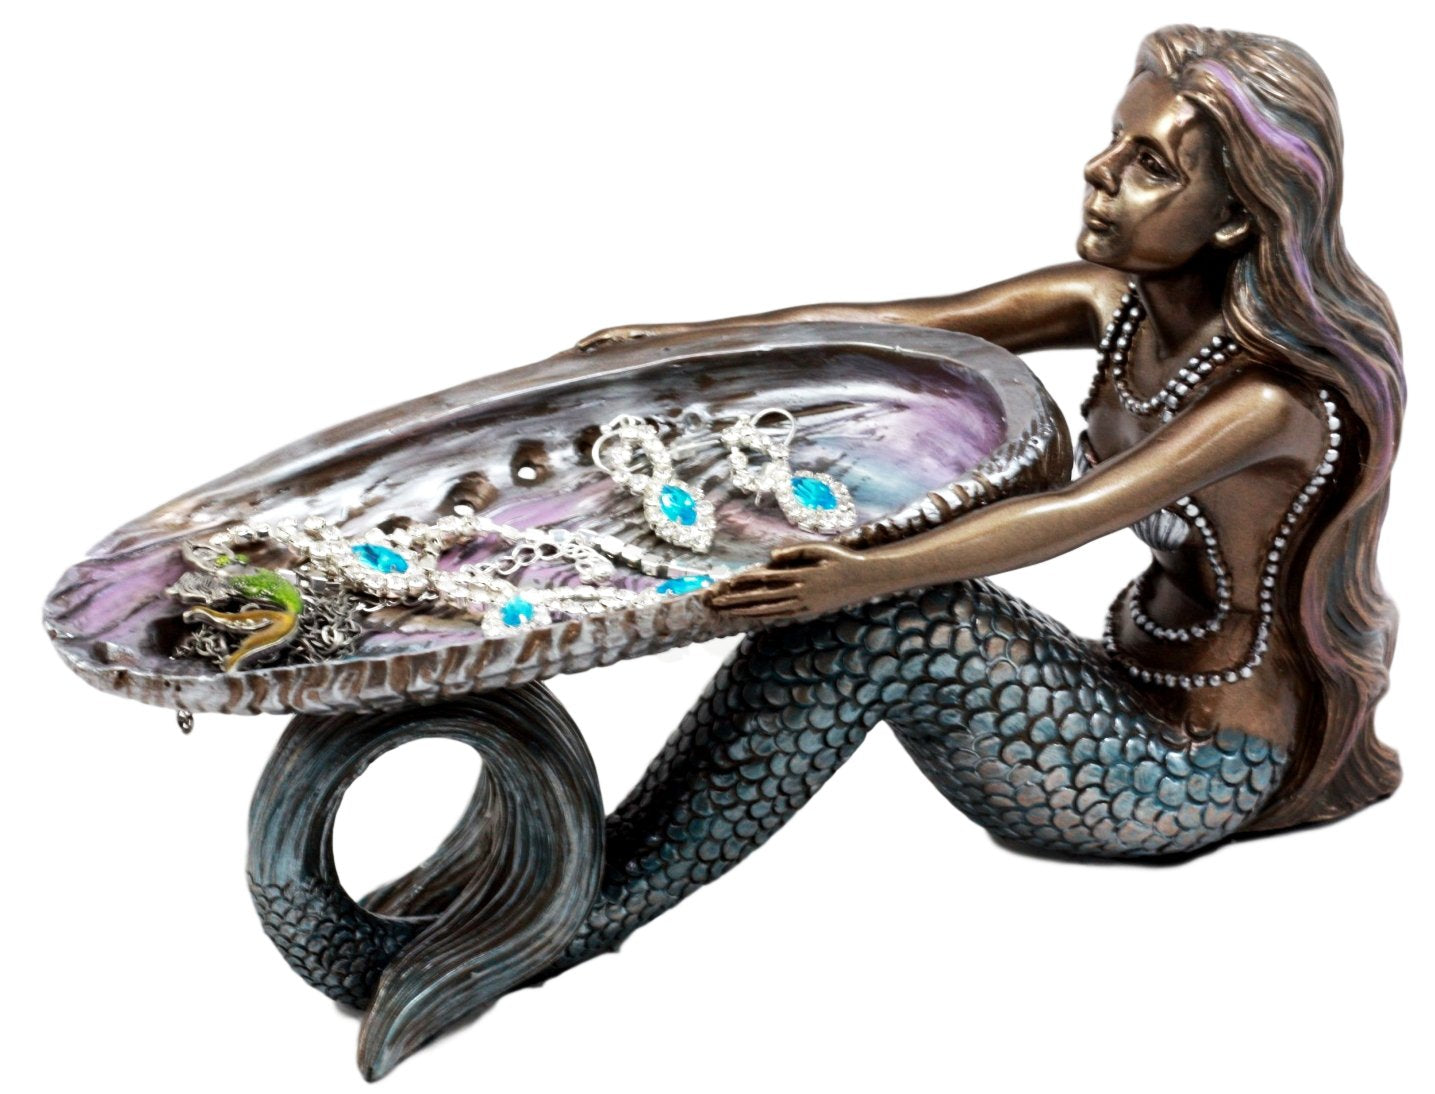 "Ebros Gift Mermaid Holding Abalone Shell Platter Jewelry Dish Figurine 9""L Art Nouveau Soap Dish Key Holder Multi Function Decor"